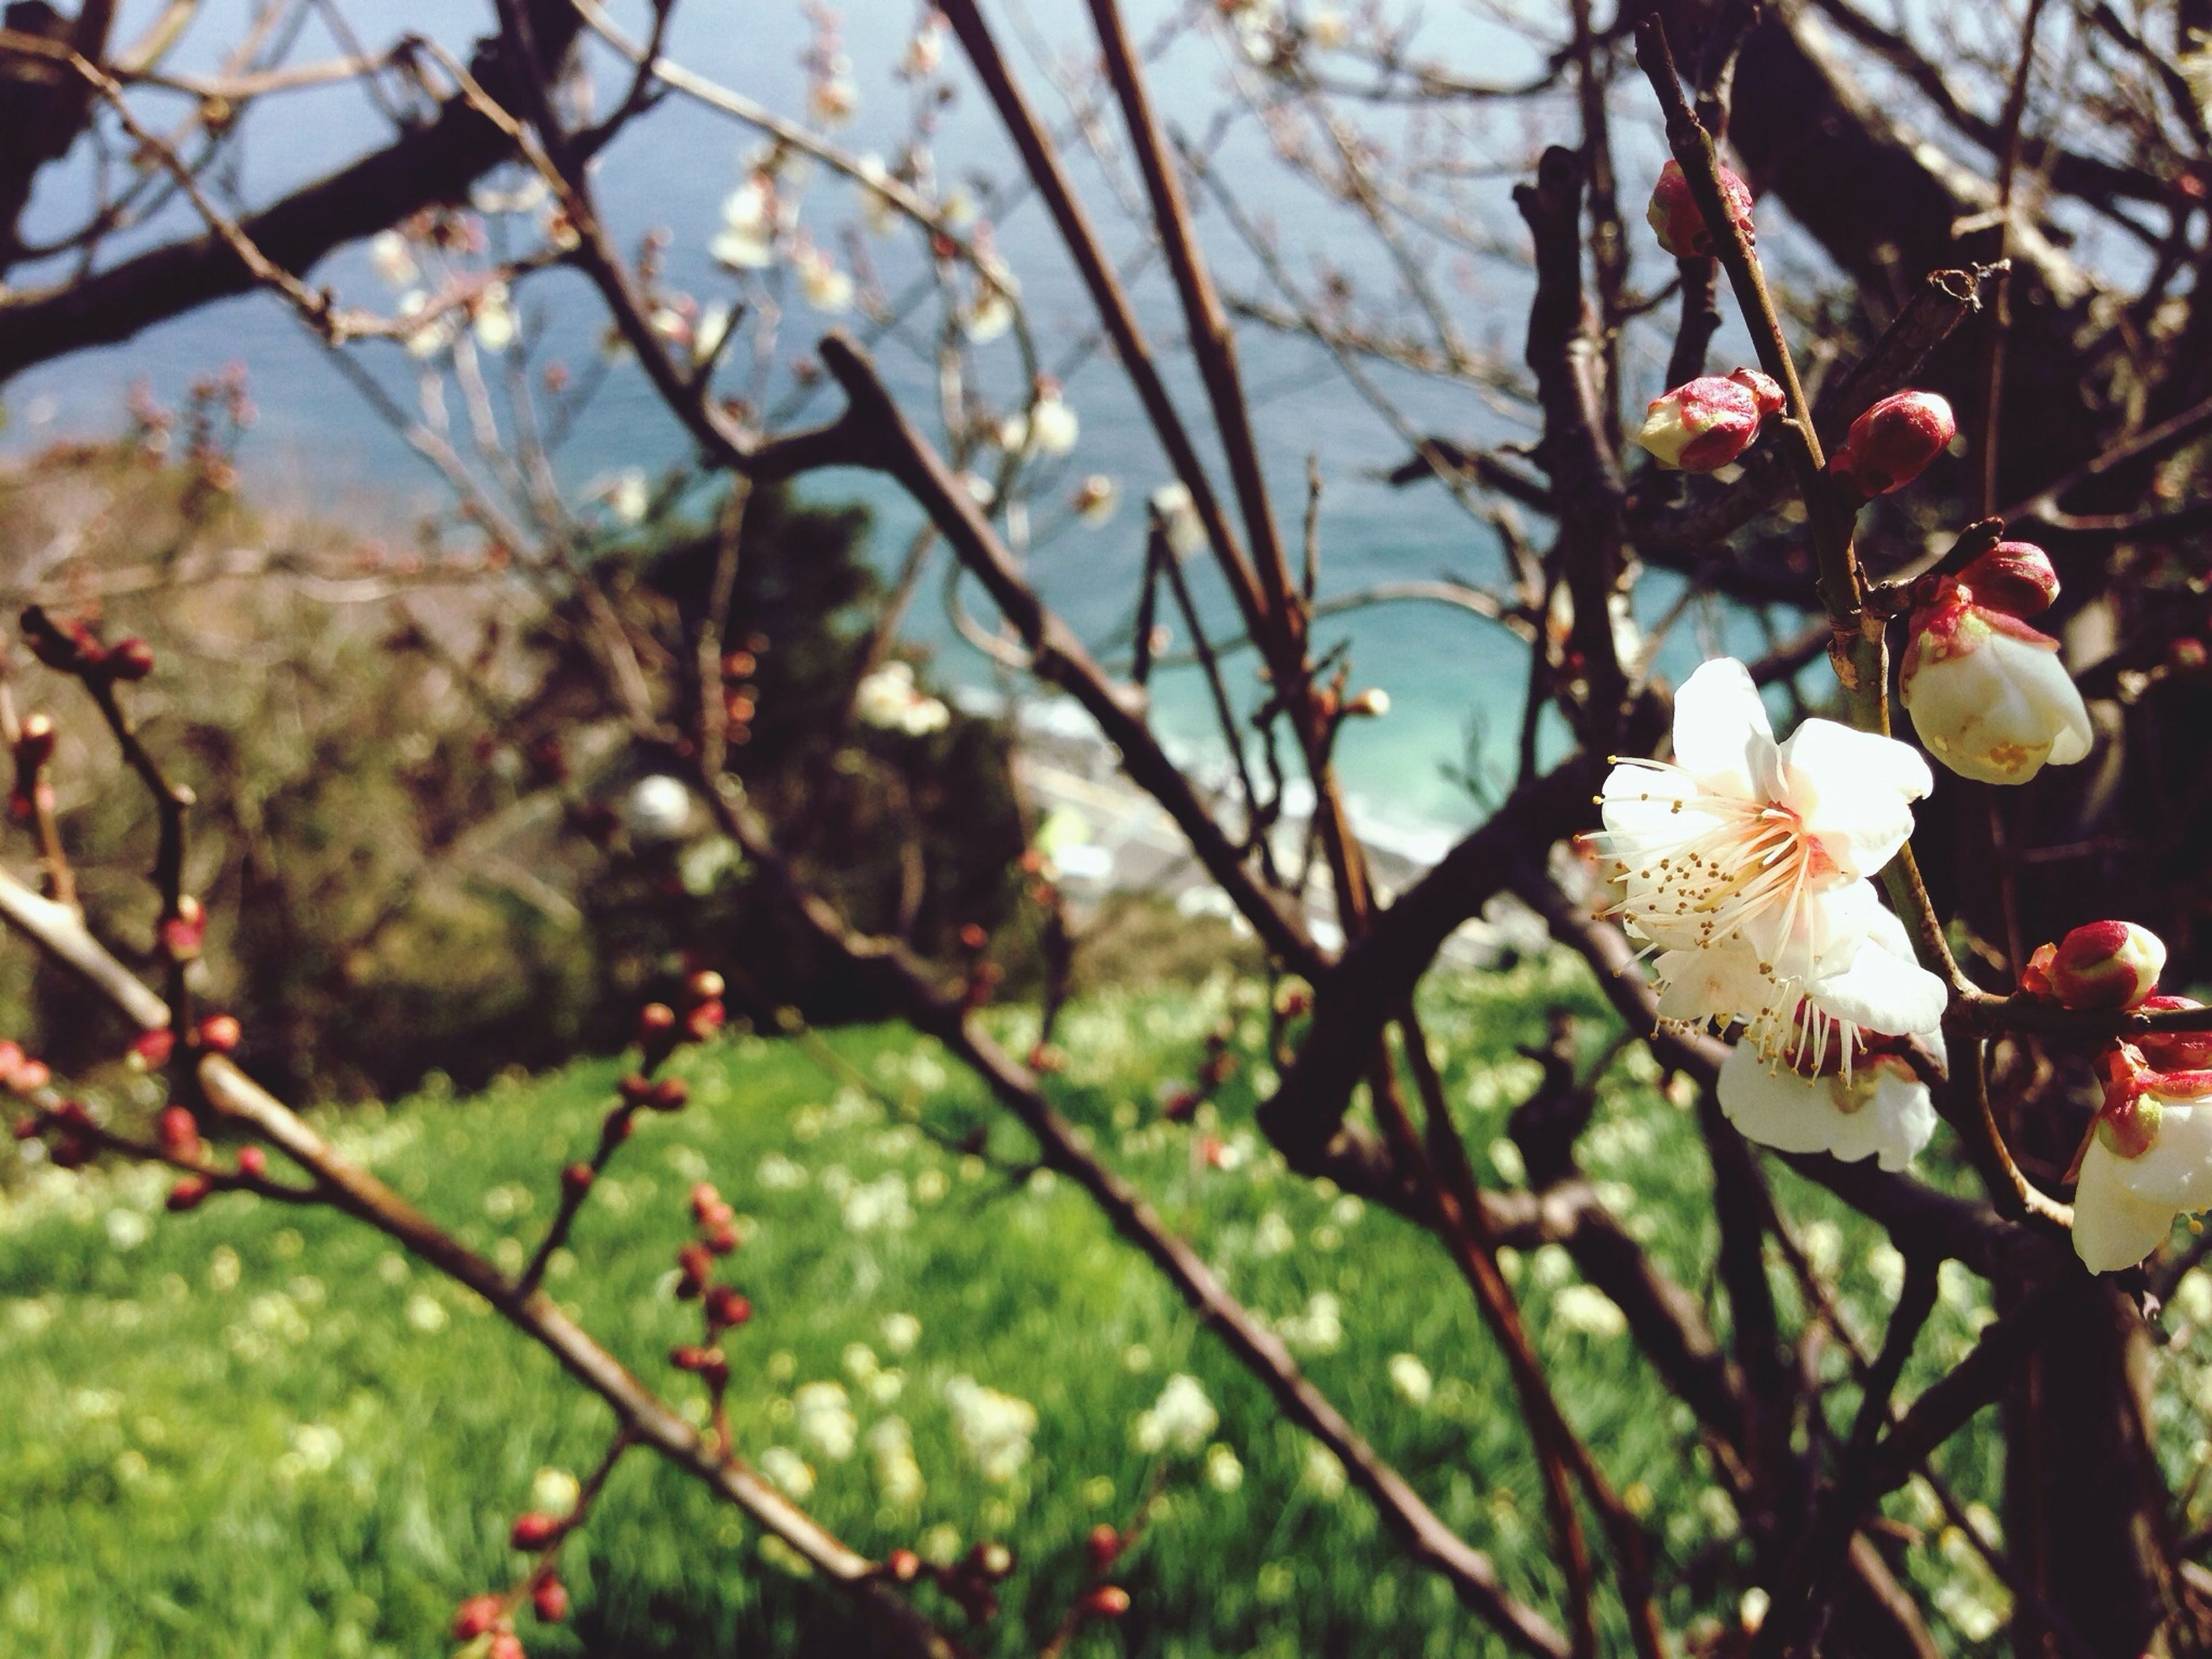 flower, branch, tree, freshness, growth, fragility, beauty in nature, nature, cherry tree, focus on foreground, blossom, cherry blossom, close-up, twig, low angle view, fruit tree, springtime, petal, blooming, in bloom